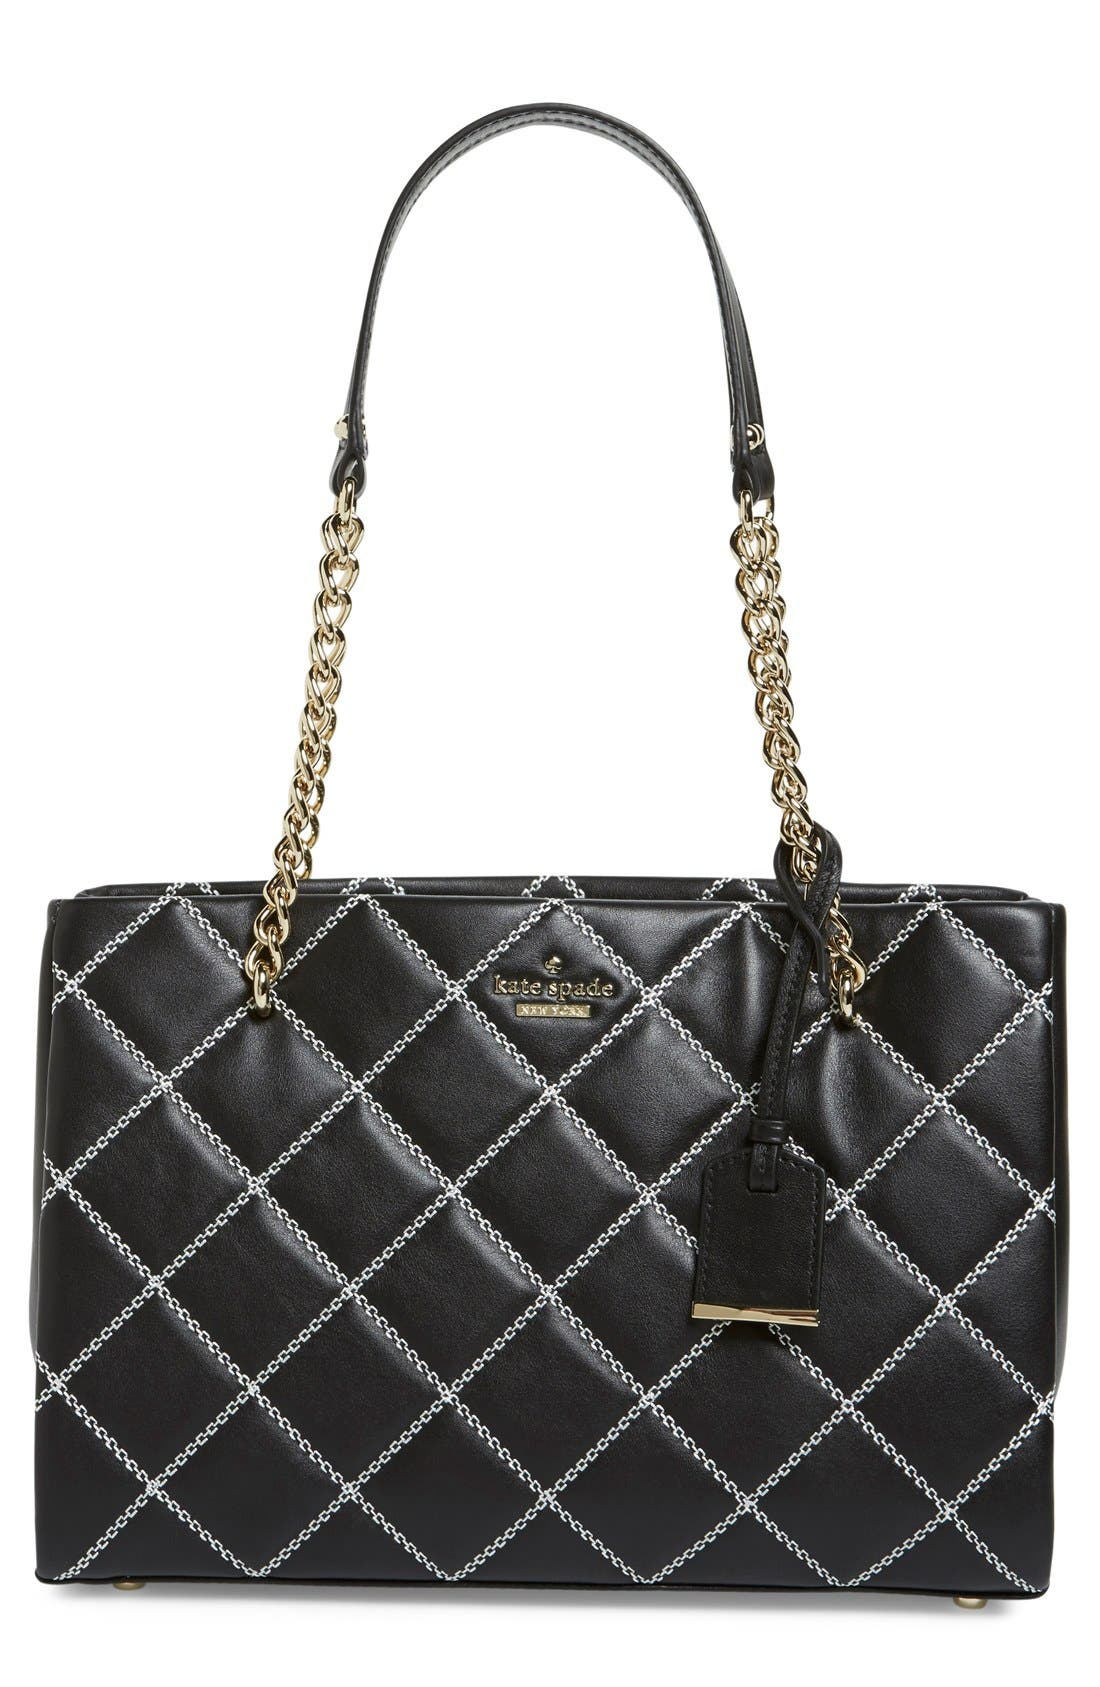 Alternate Image 1 Selected - kate spade new york 'emerson place - small phoebe' quilted leather shoulder bag